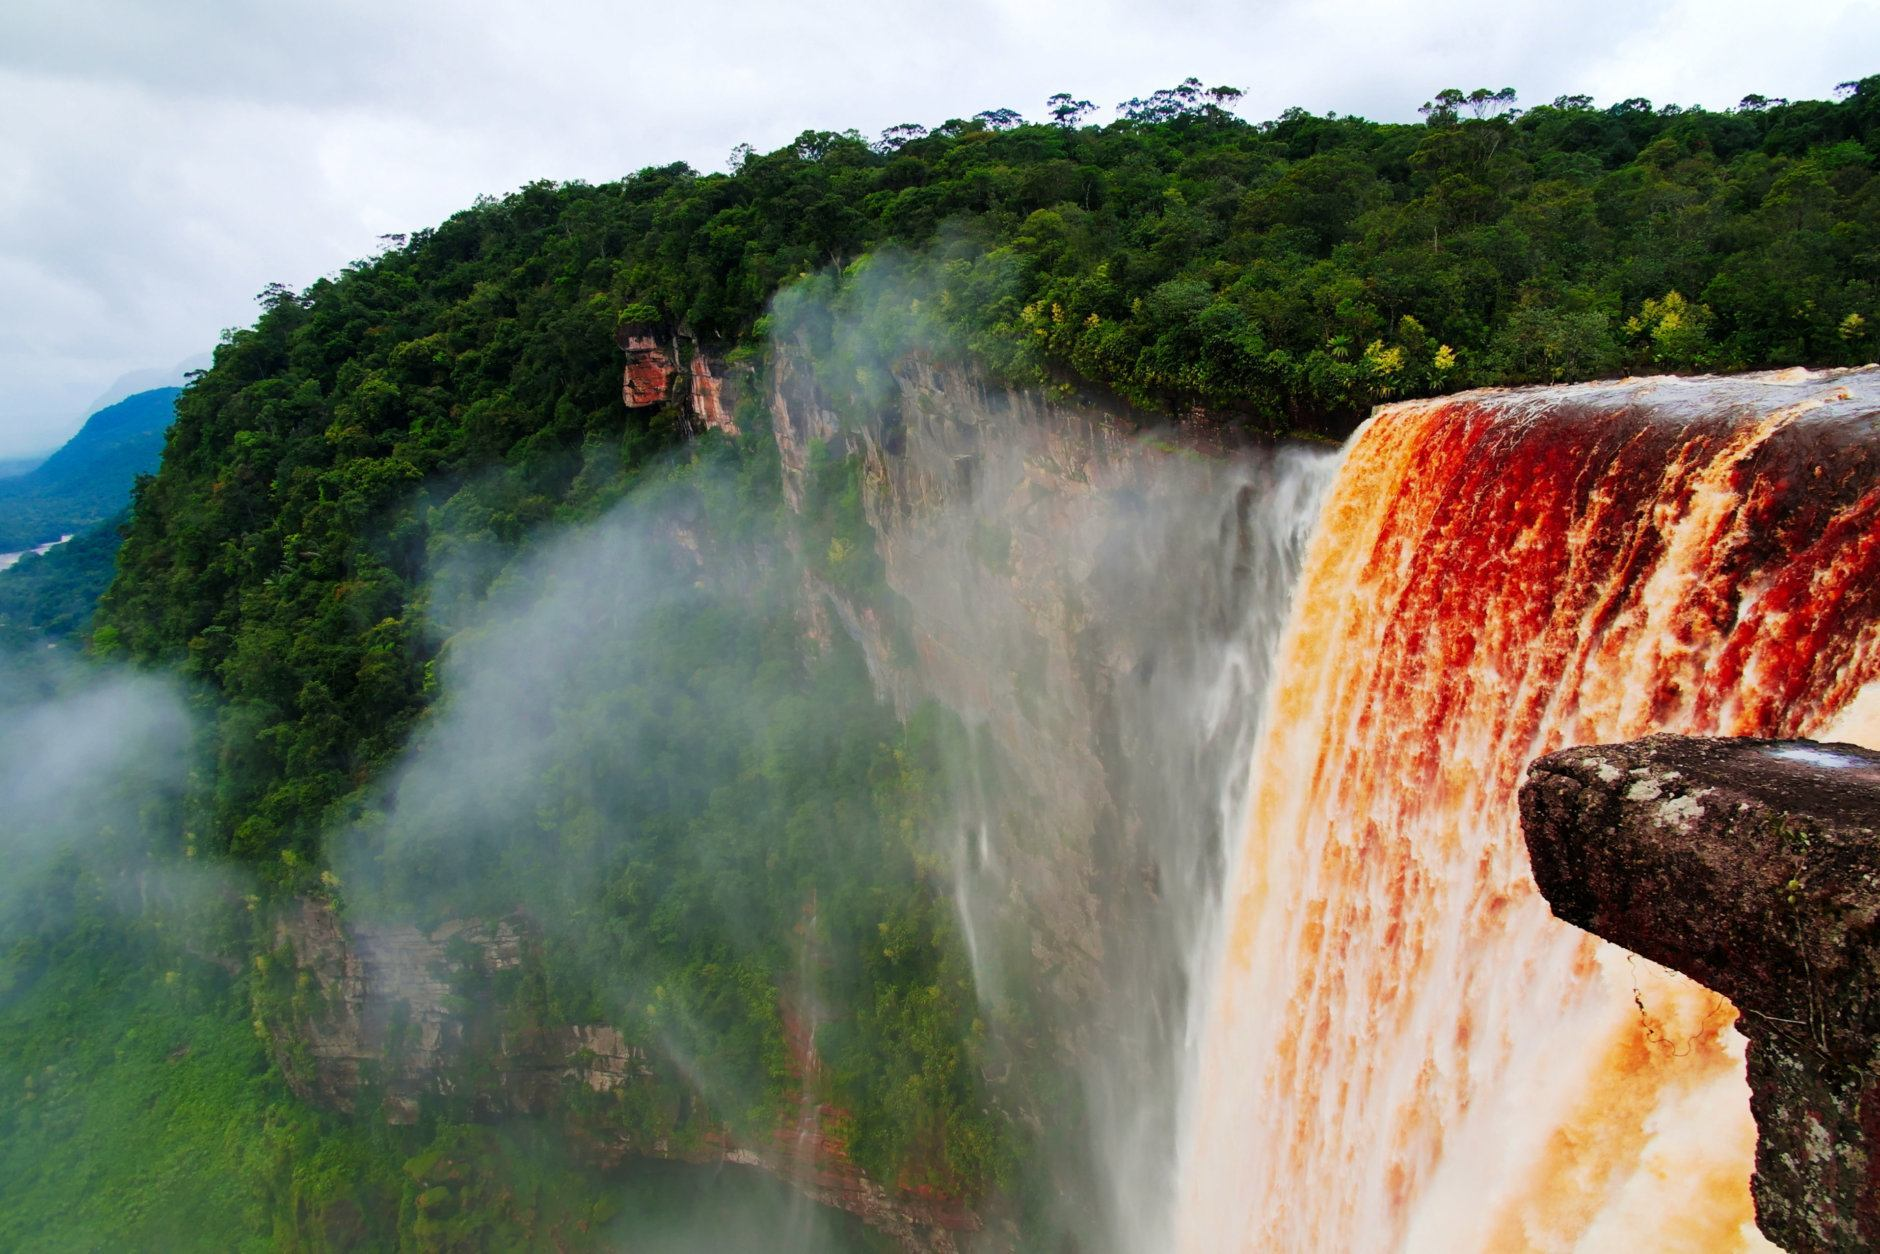 Kaieteur waterfall, one of the tallest falls in the world, potaro river, Guyana